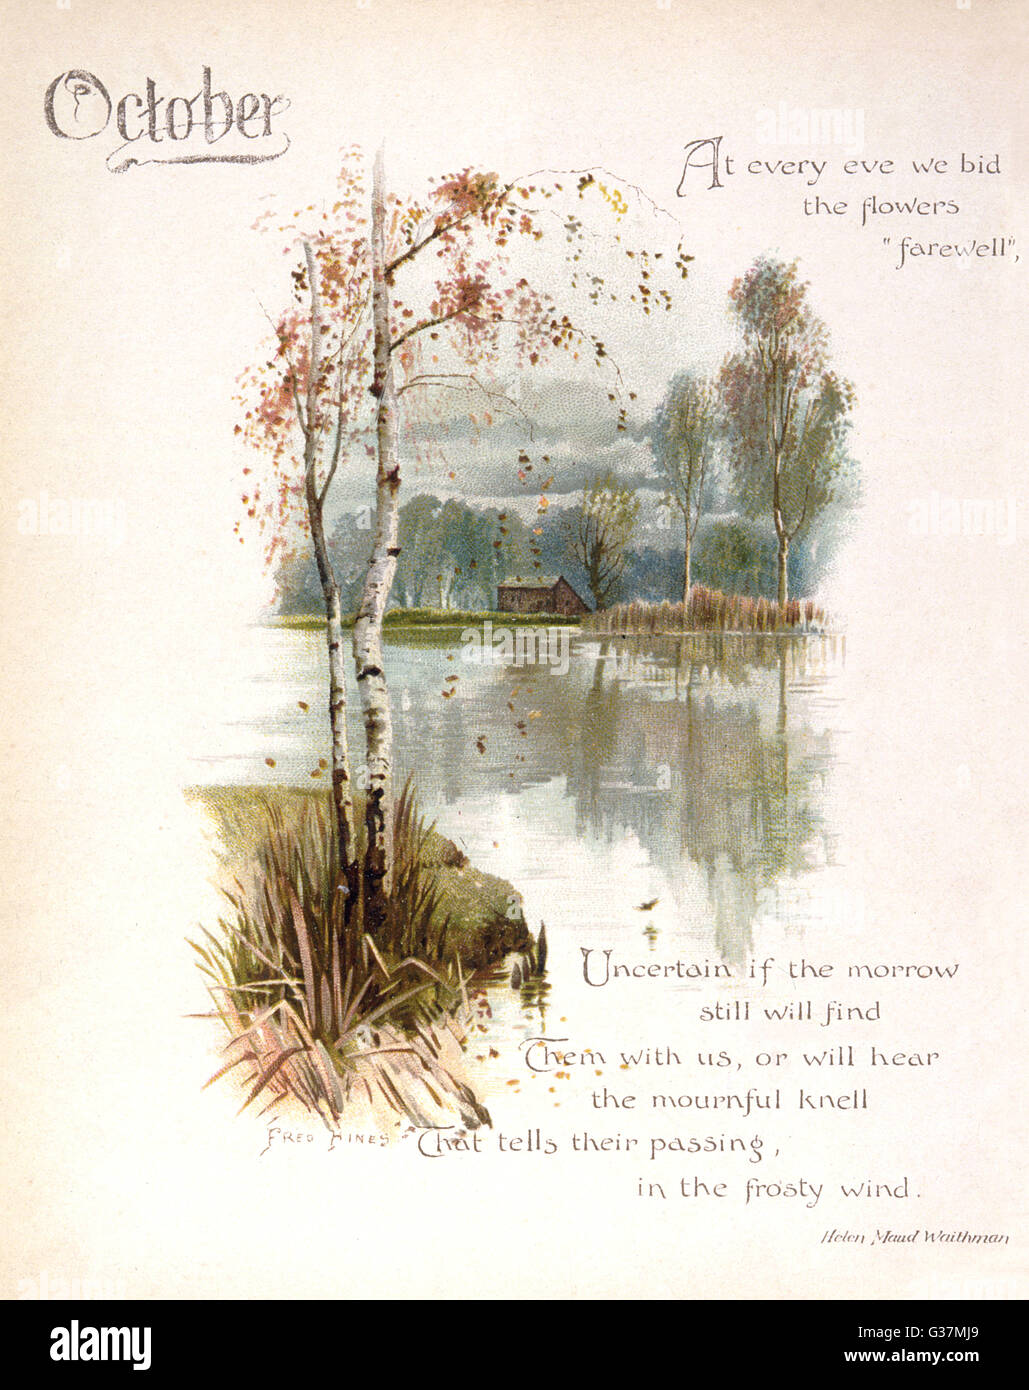 Book illustration -- October, with a quiet stretch of water.      Date: circa 1880 - Stock Image